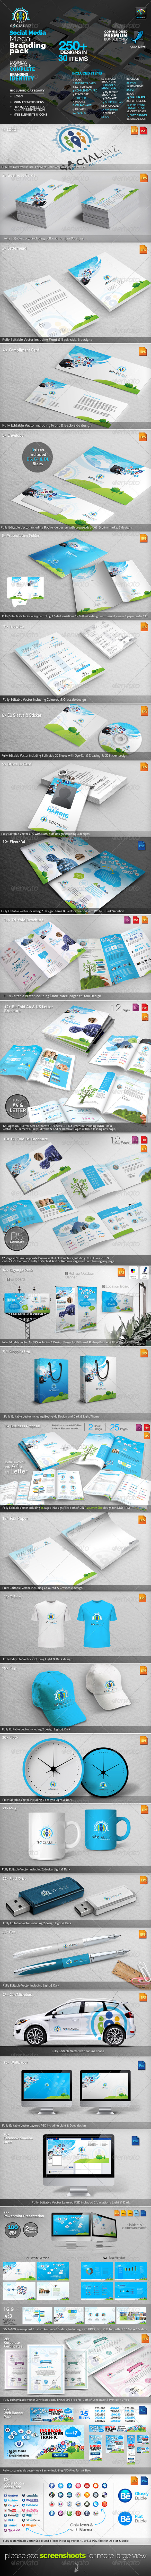 Socialbiz social media id mega branding pack by graphicartist socialbiz social media id mega branding pack stationery print templates pronofoot35fo Image collections